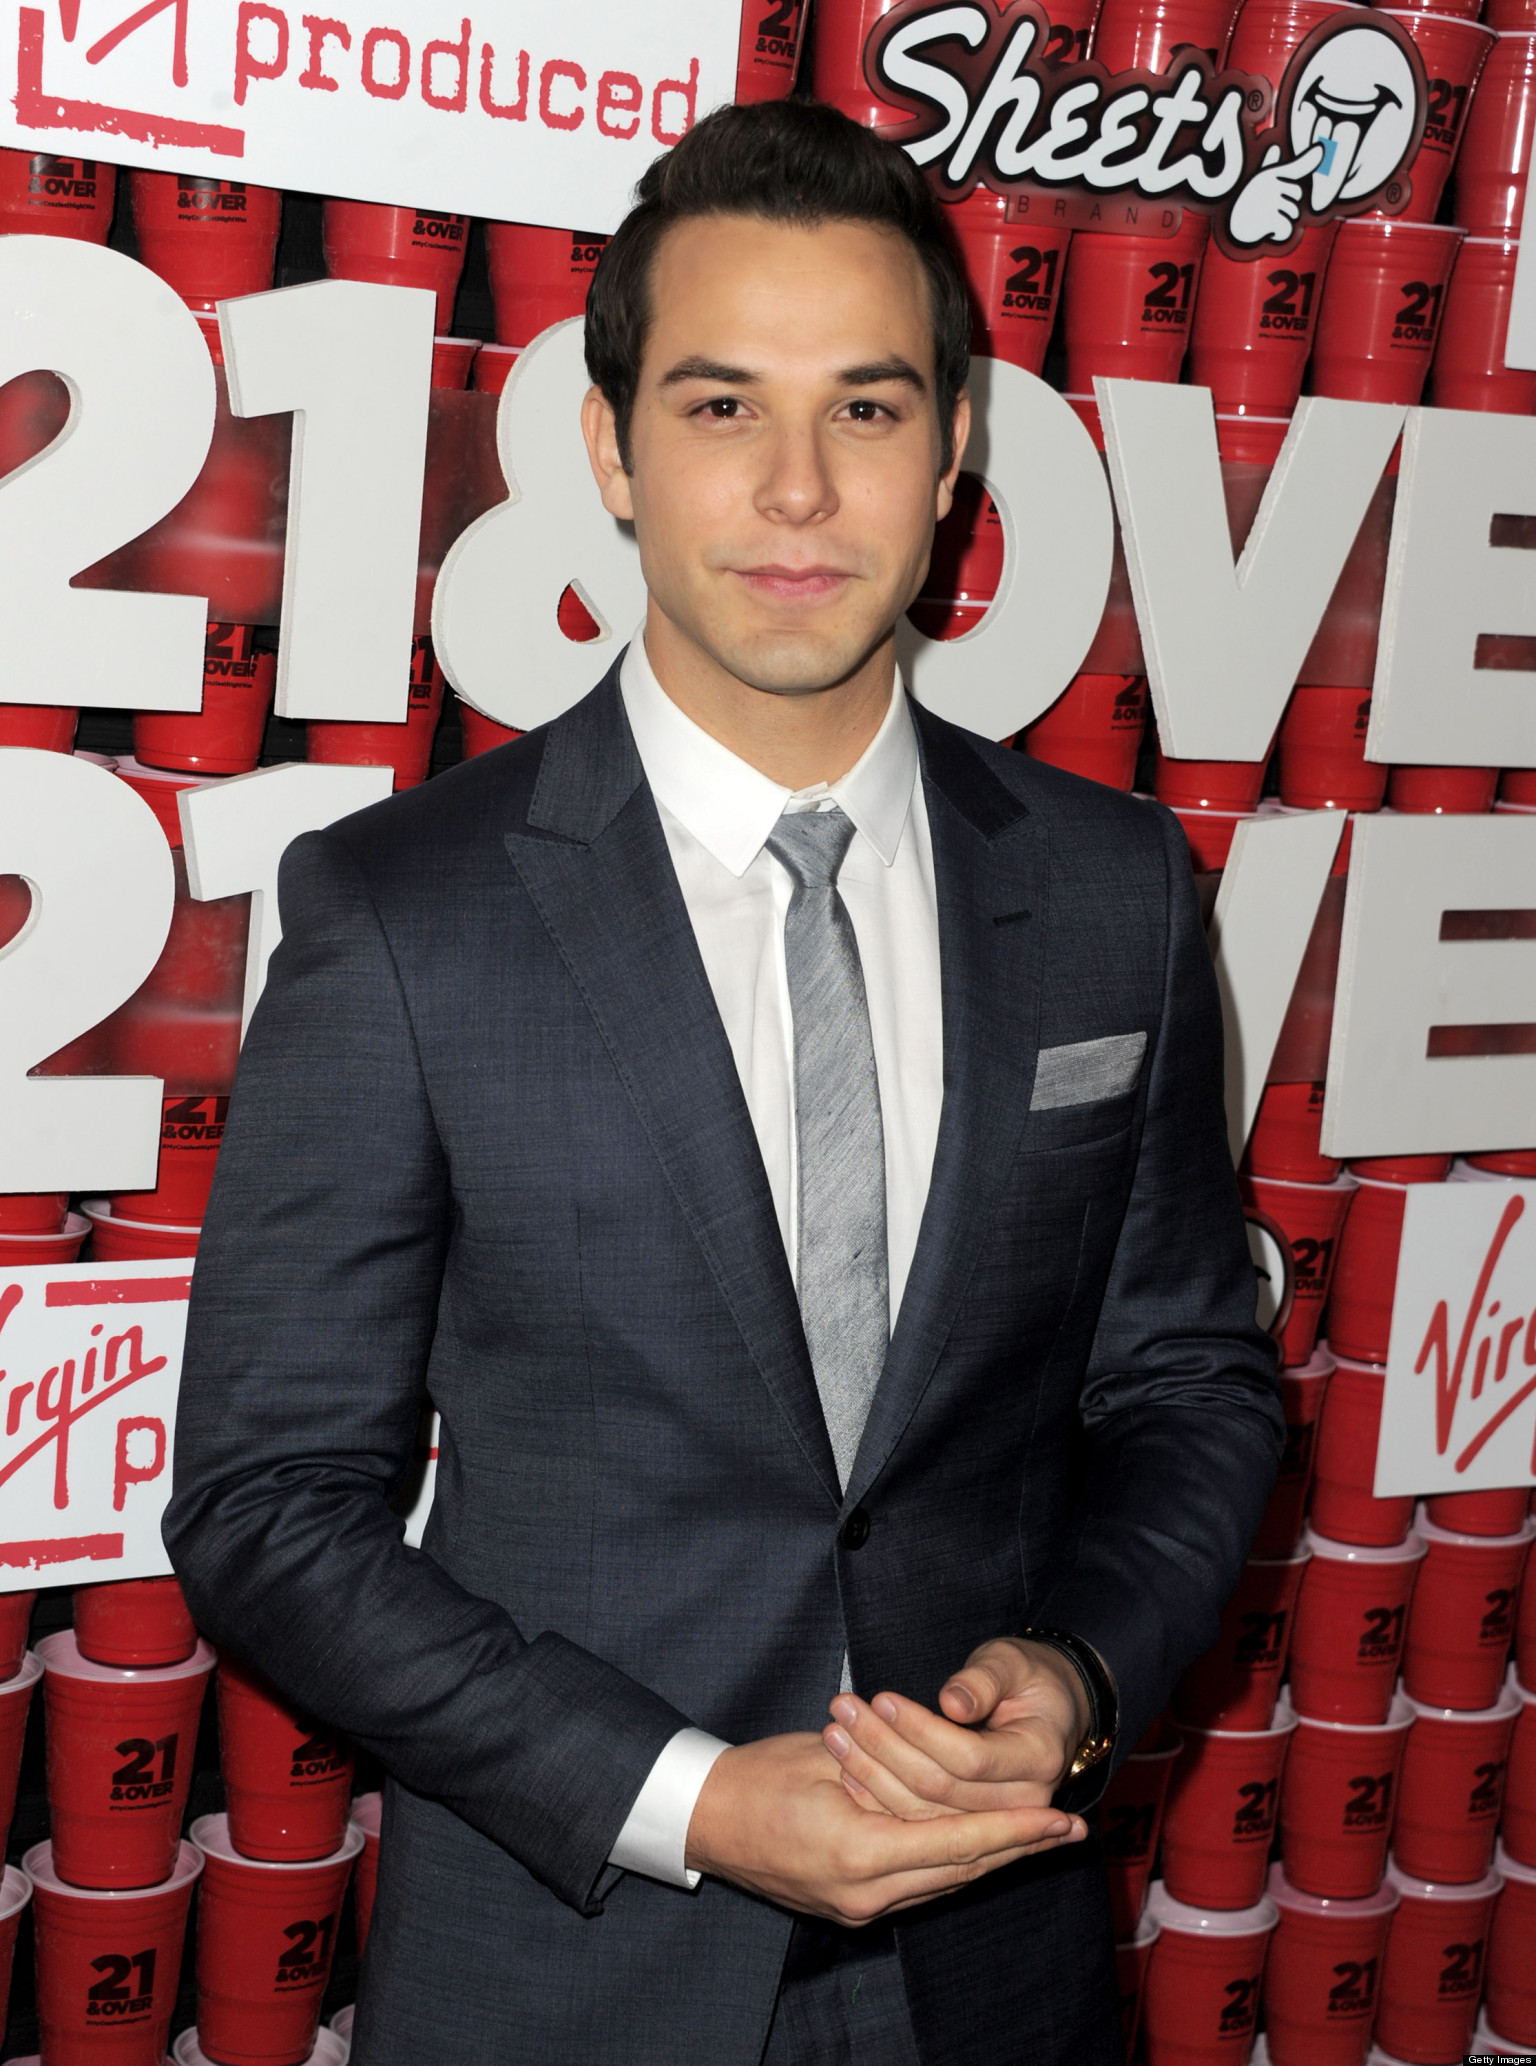 skylar astin biographyskylar astin instagram, skylar astin twitter, skylar astin snapchat, skylar astin and anna camp wedding, skylar astin and anna camp, skylar astin and anna kendrick, skylar astin lea michele, skylar astin glee, skylar astin wife, skylar astin height, skylar astin, skylar astin singing, skylar astin pitch perfect 2, skylar astin spring awakening, skylar astin and anna camp engaged, skylar astin wiki, skylar astin biography, skylar astin and anna camp married, skylar astin pitch perfect, skylar astin facebook